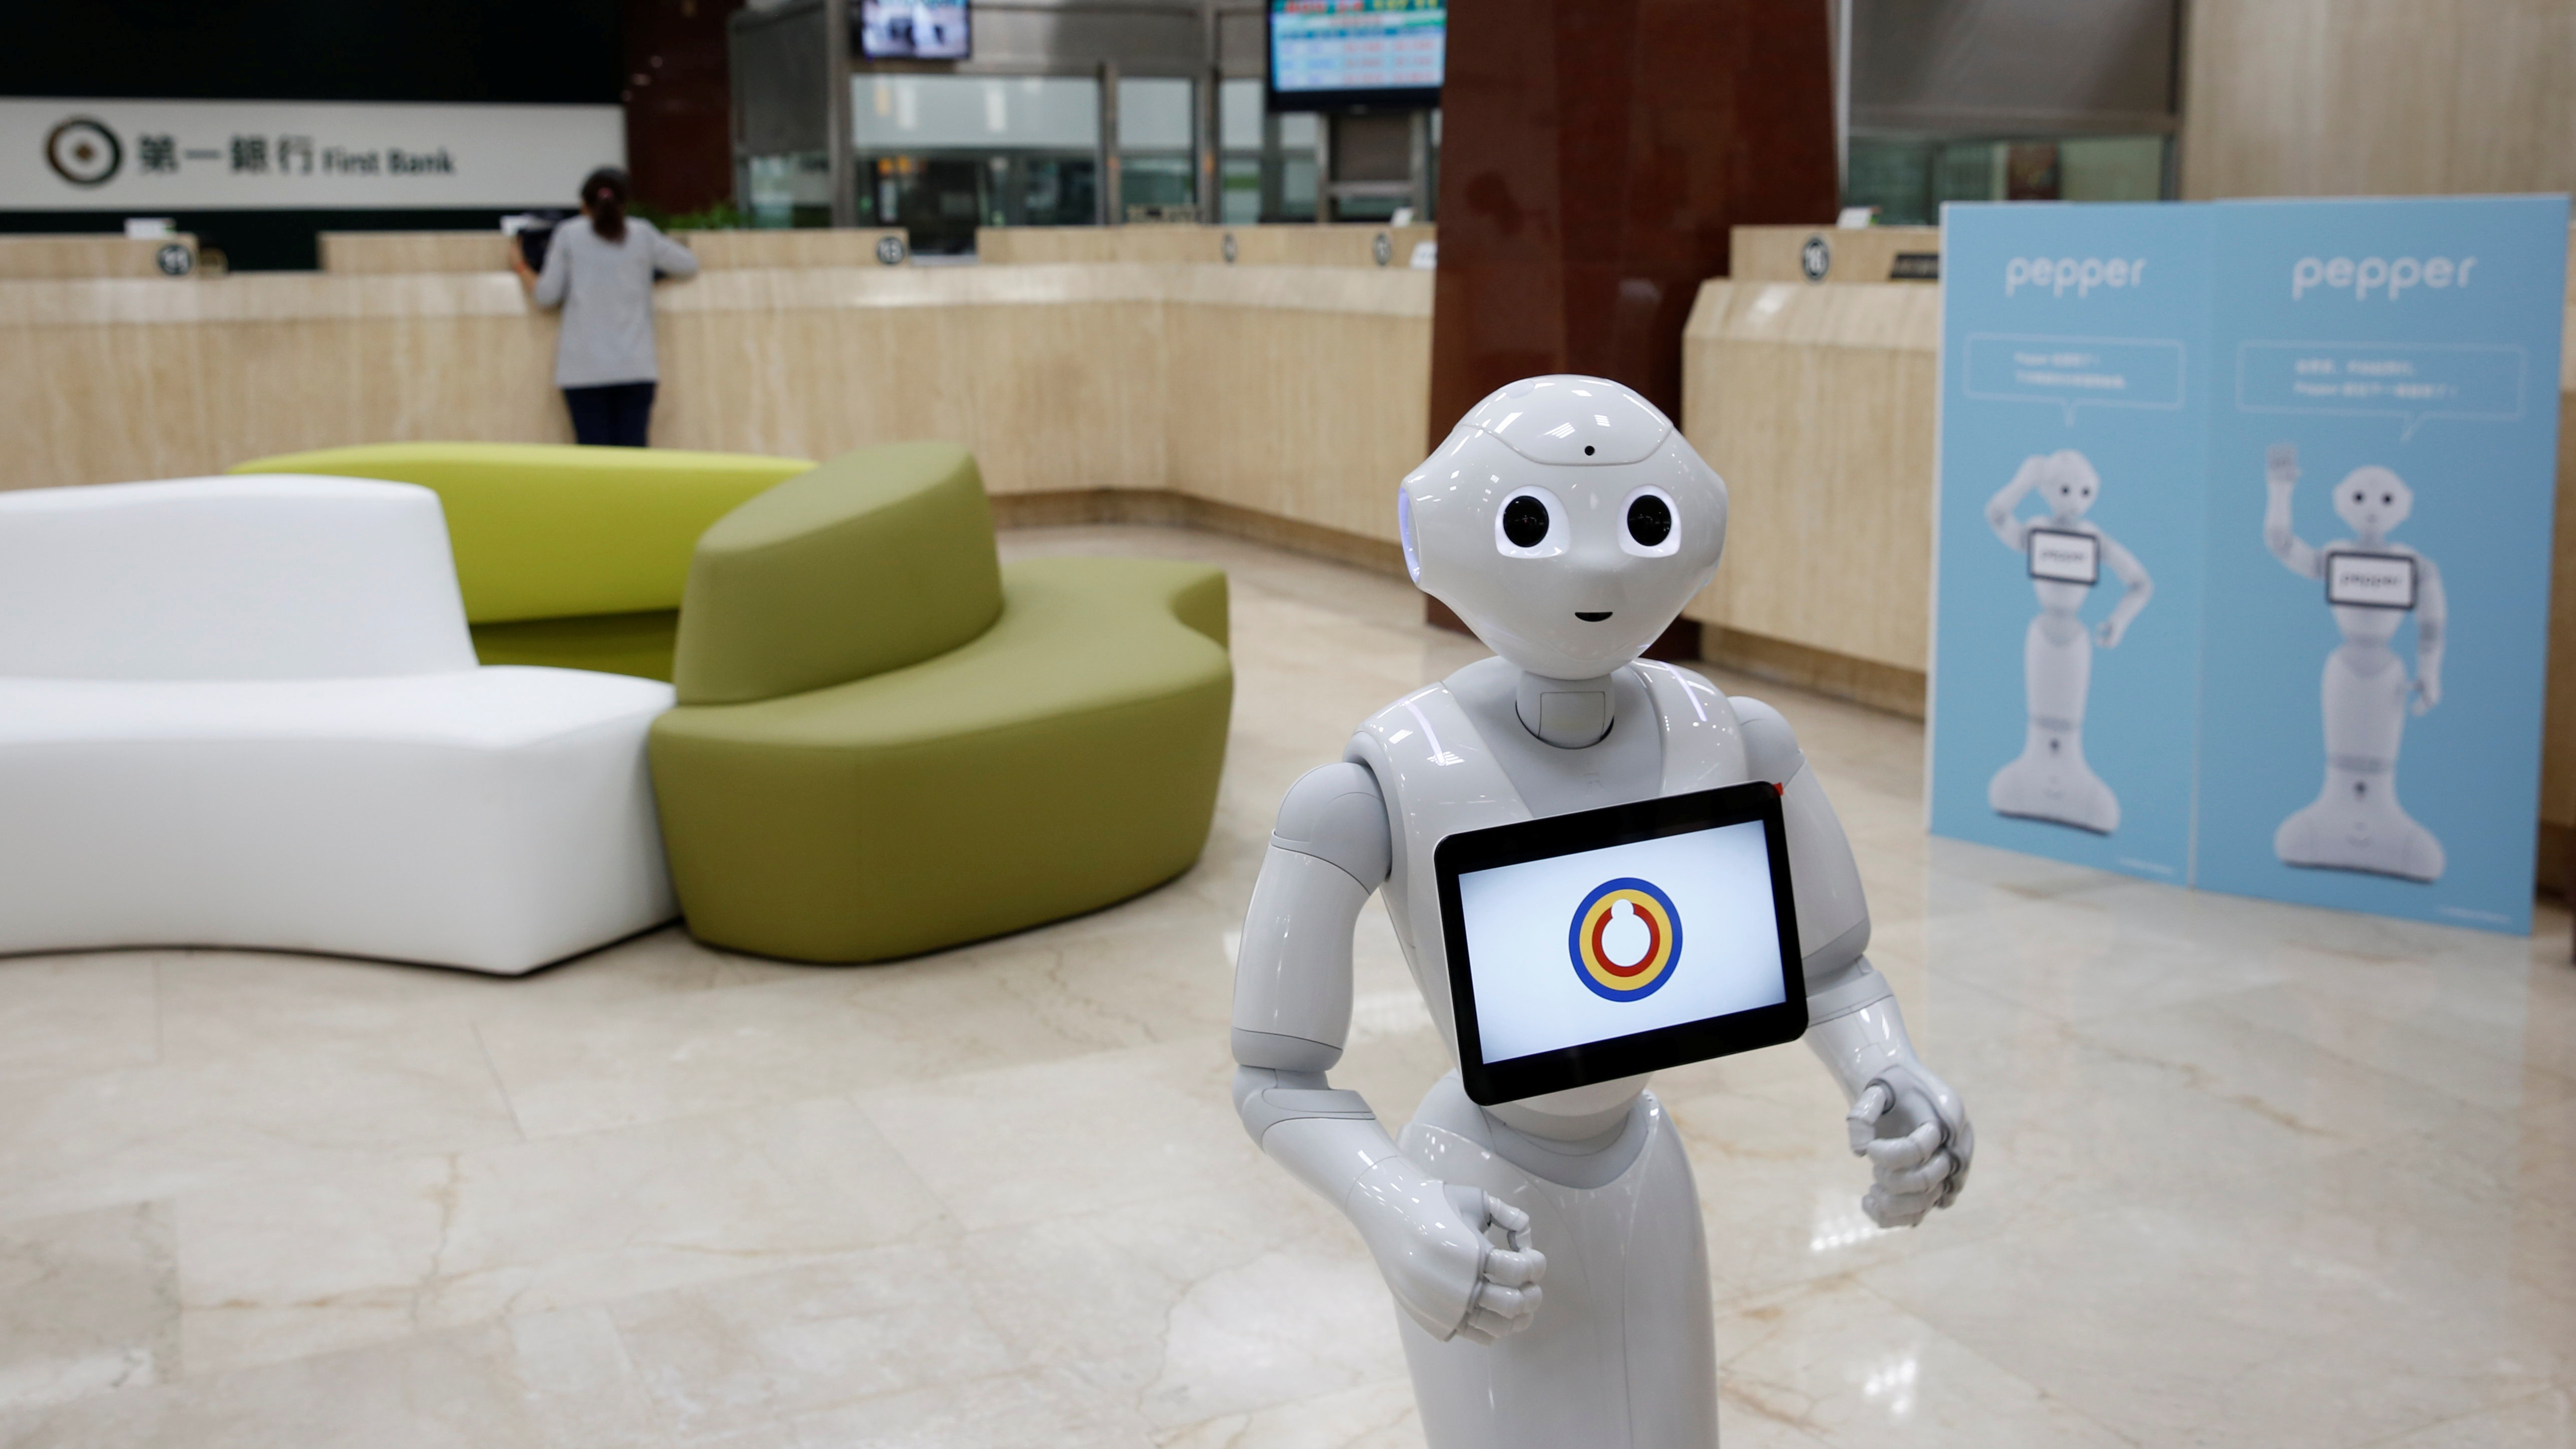 SoftBank's robot 'Pepper', is seen at First Bank branch as a concierge to welcome customers in Taipei,...